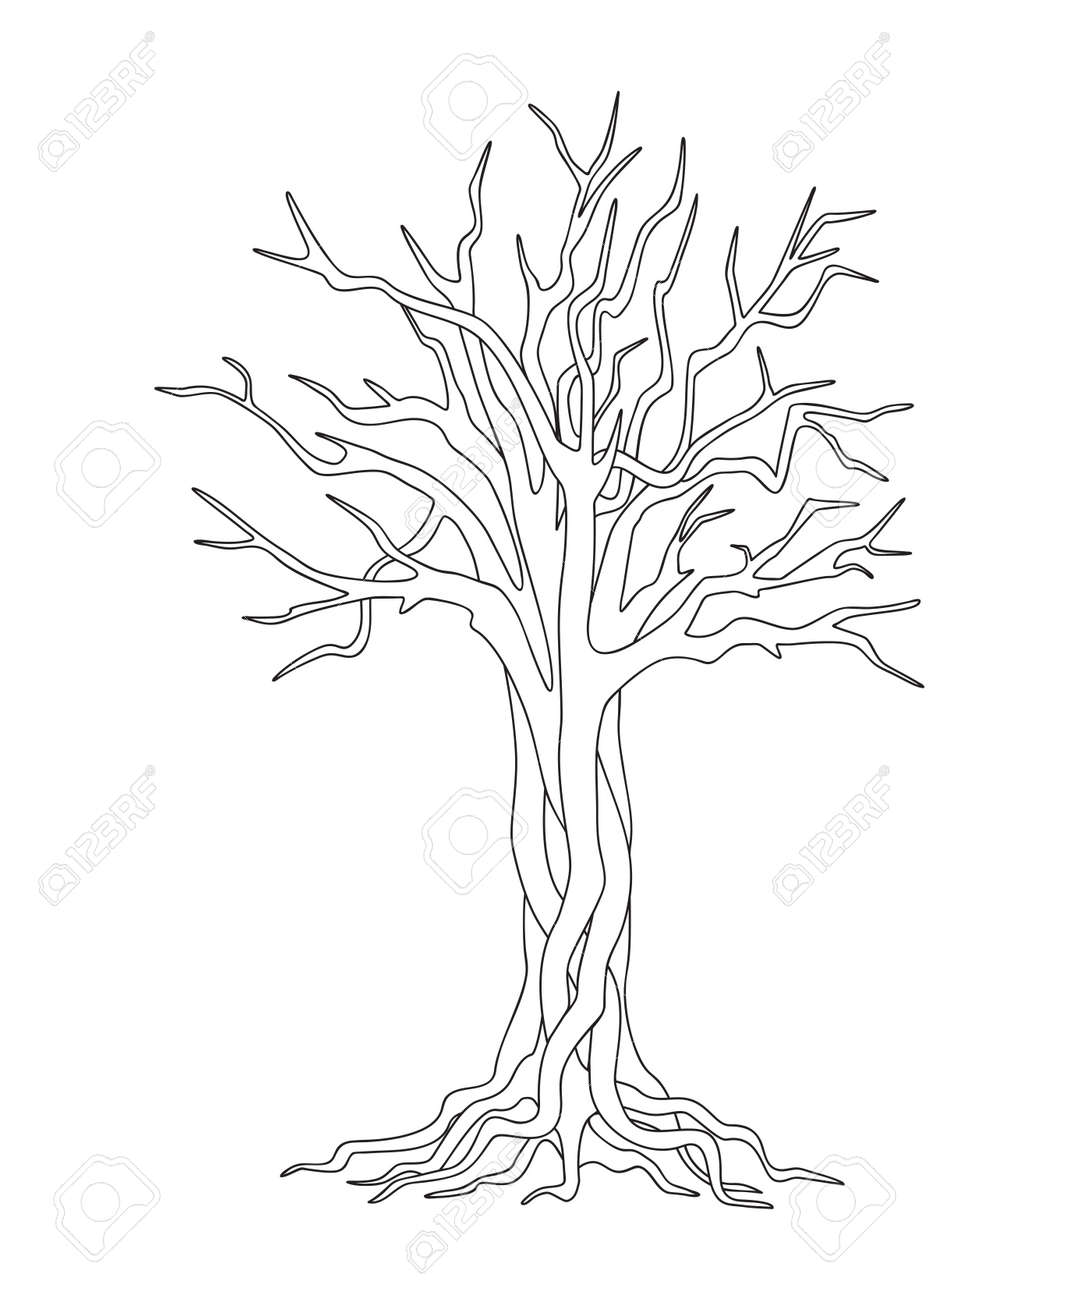 Black And White Outline Illustration With Isolated Tree For Kids